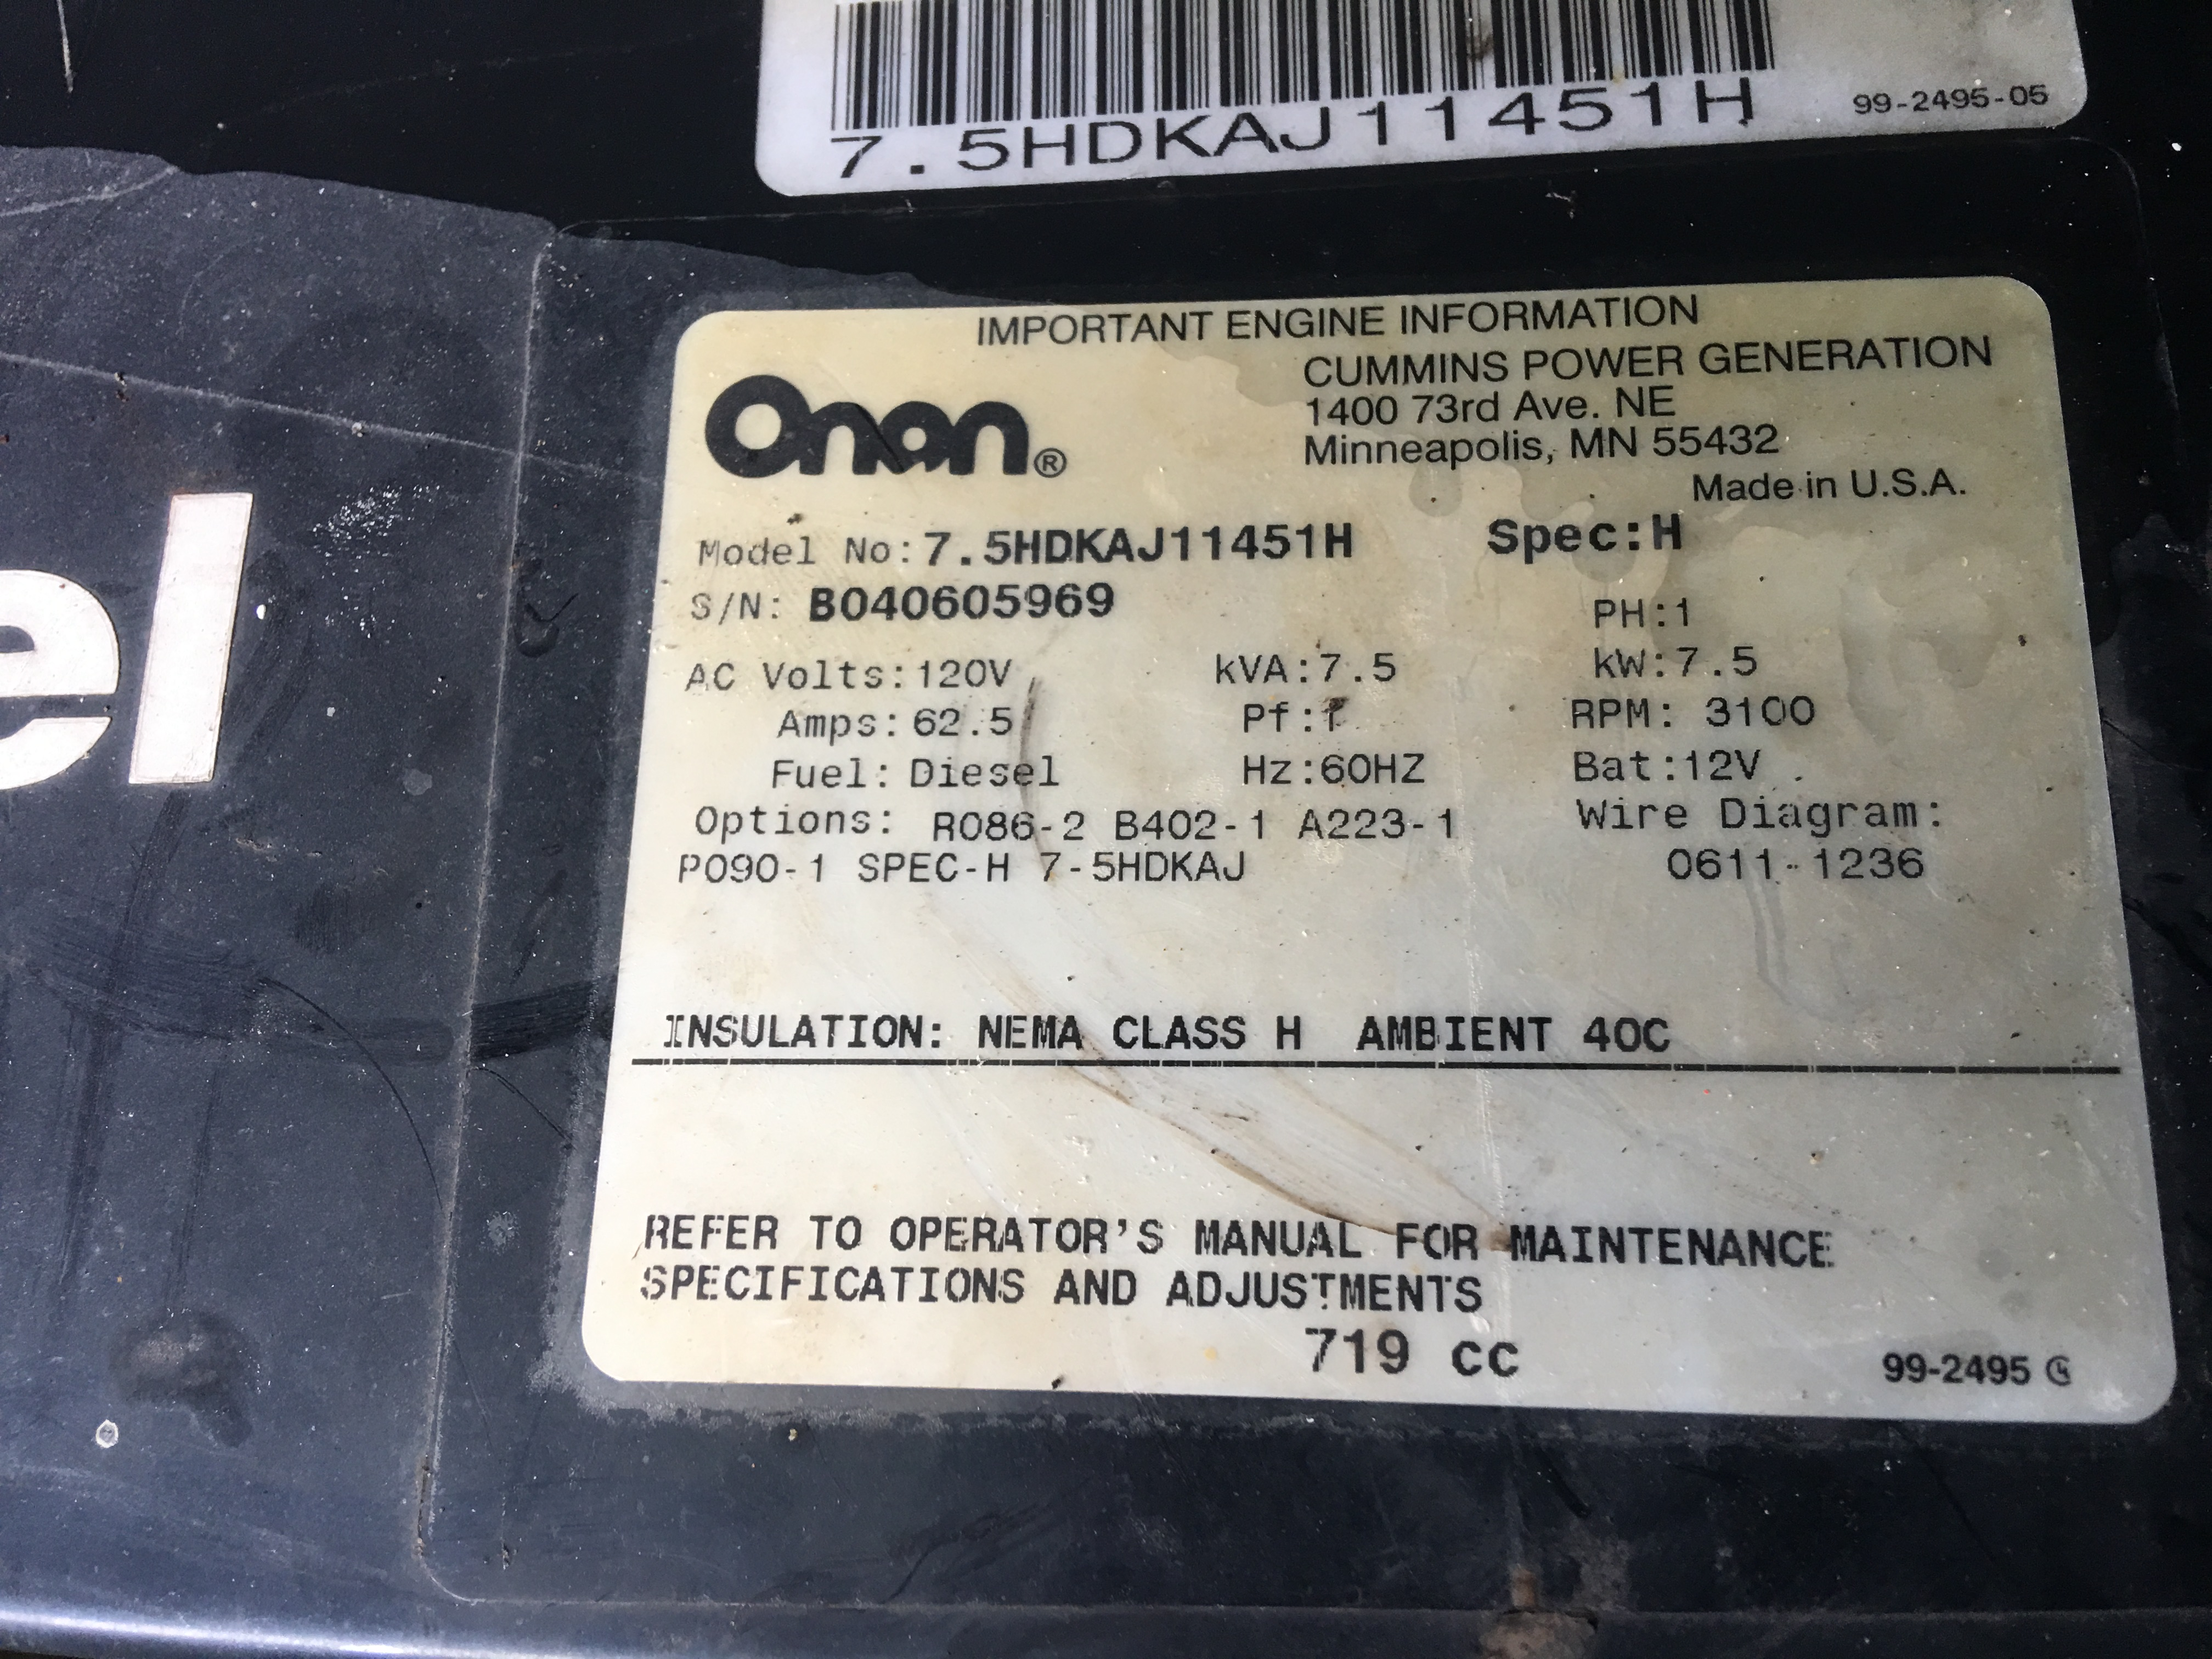 Onan 2500 Fault Code 46 Exact Is Low Voltage I Have Inverter Charger Wiring Diagram 127addc4 8295 4638 8f3c 4aed7838f286jpeg